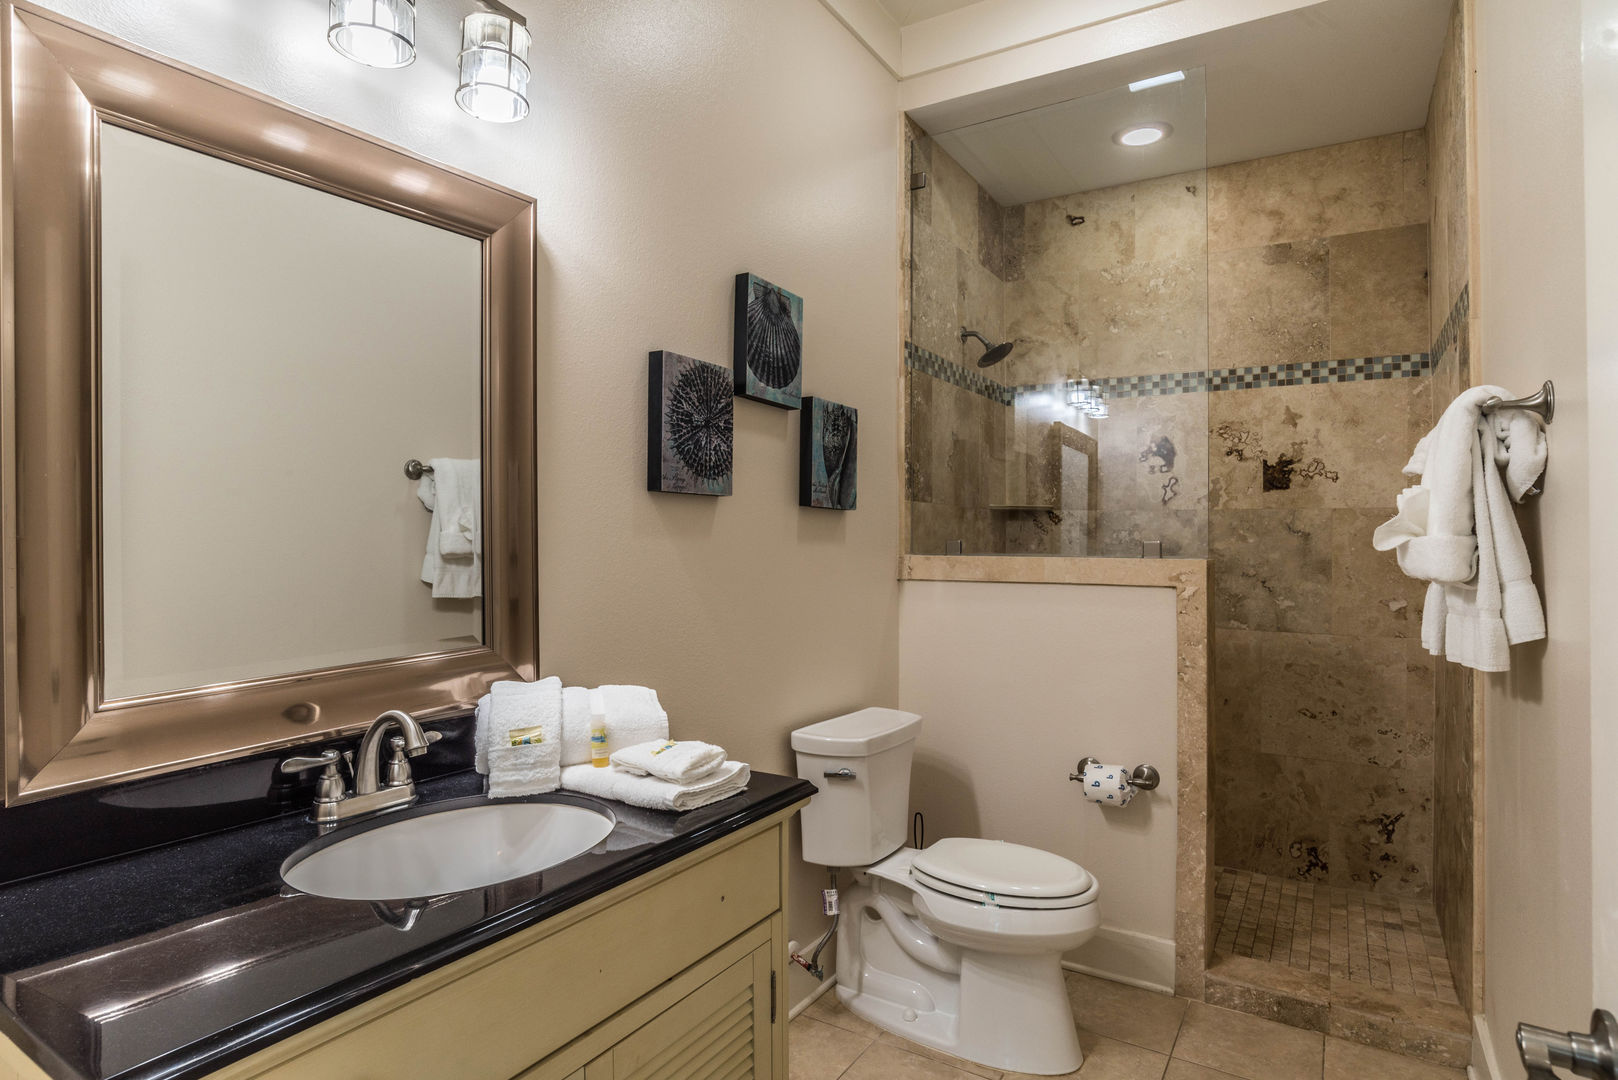 Additional Guest Bathroom in our Fort Morgan, AL Vacation Rental